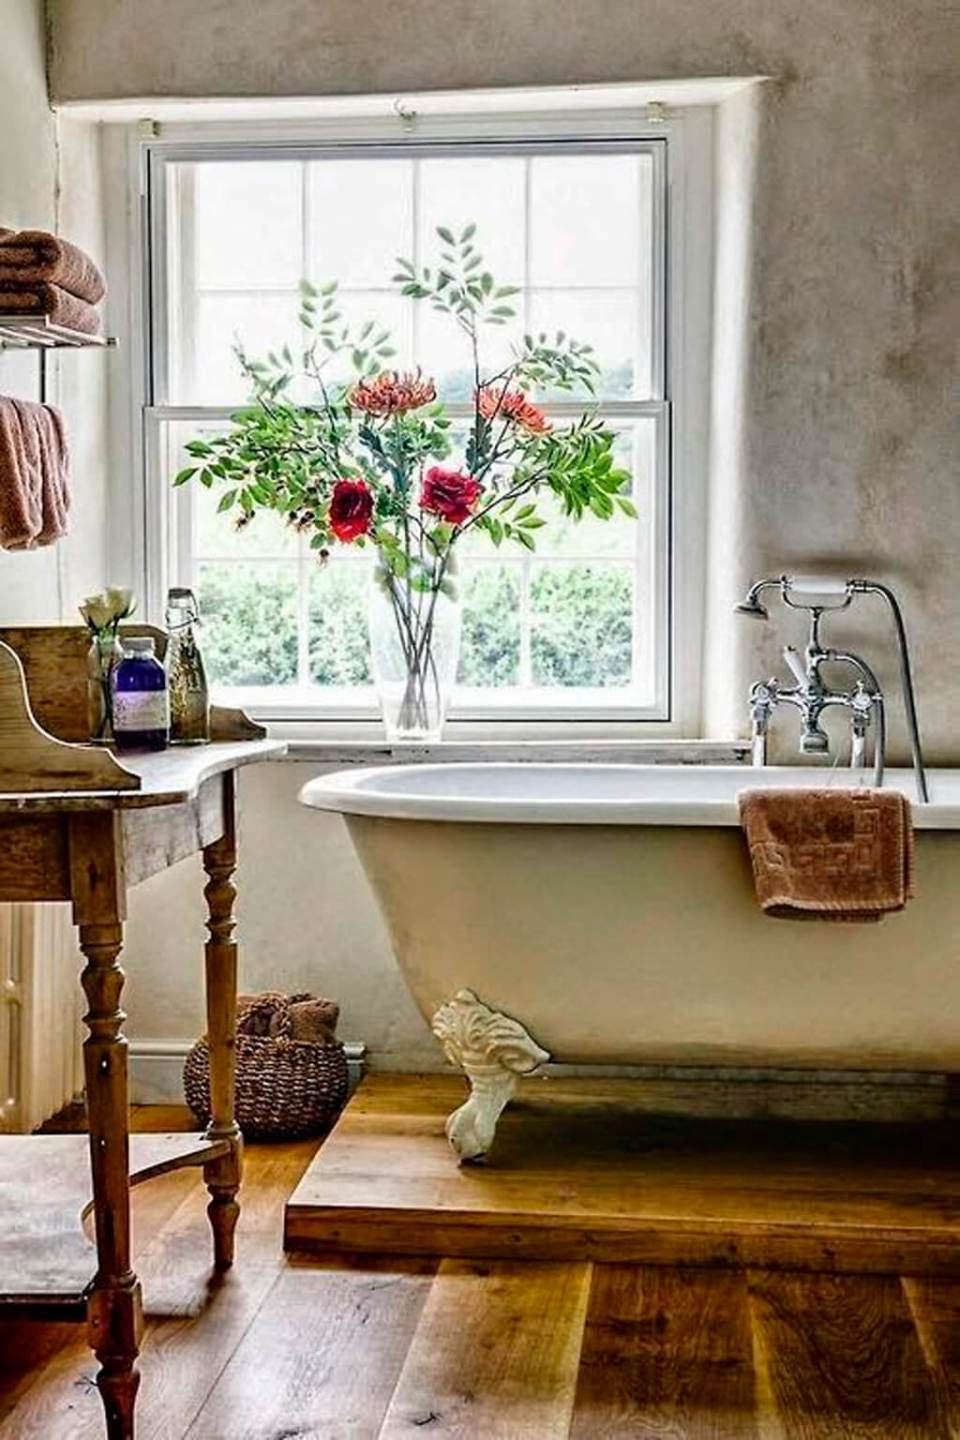 Farmhouse Bathroom Décor with Elevated Bathtub